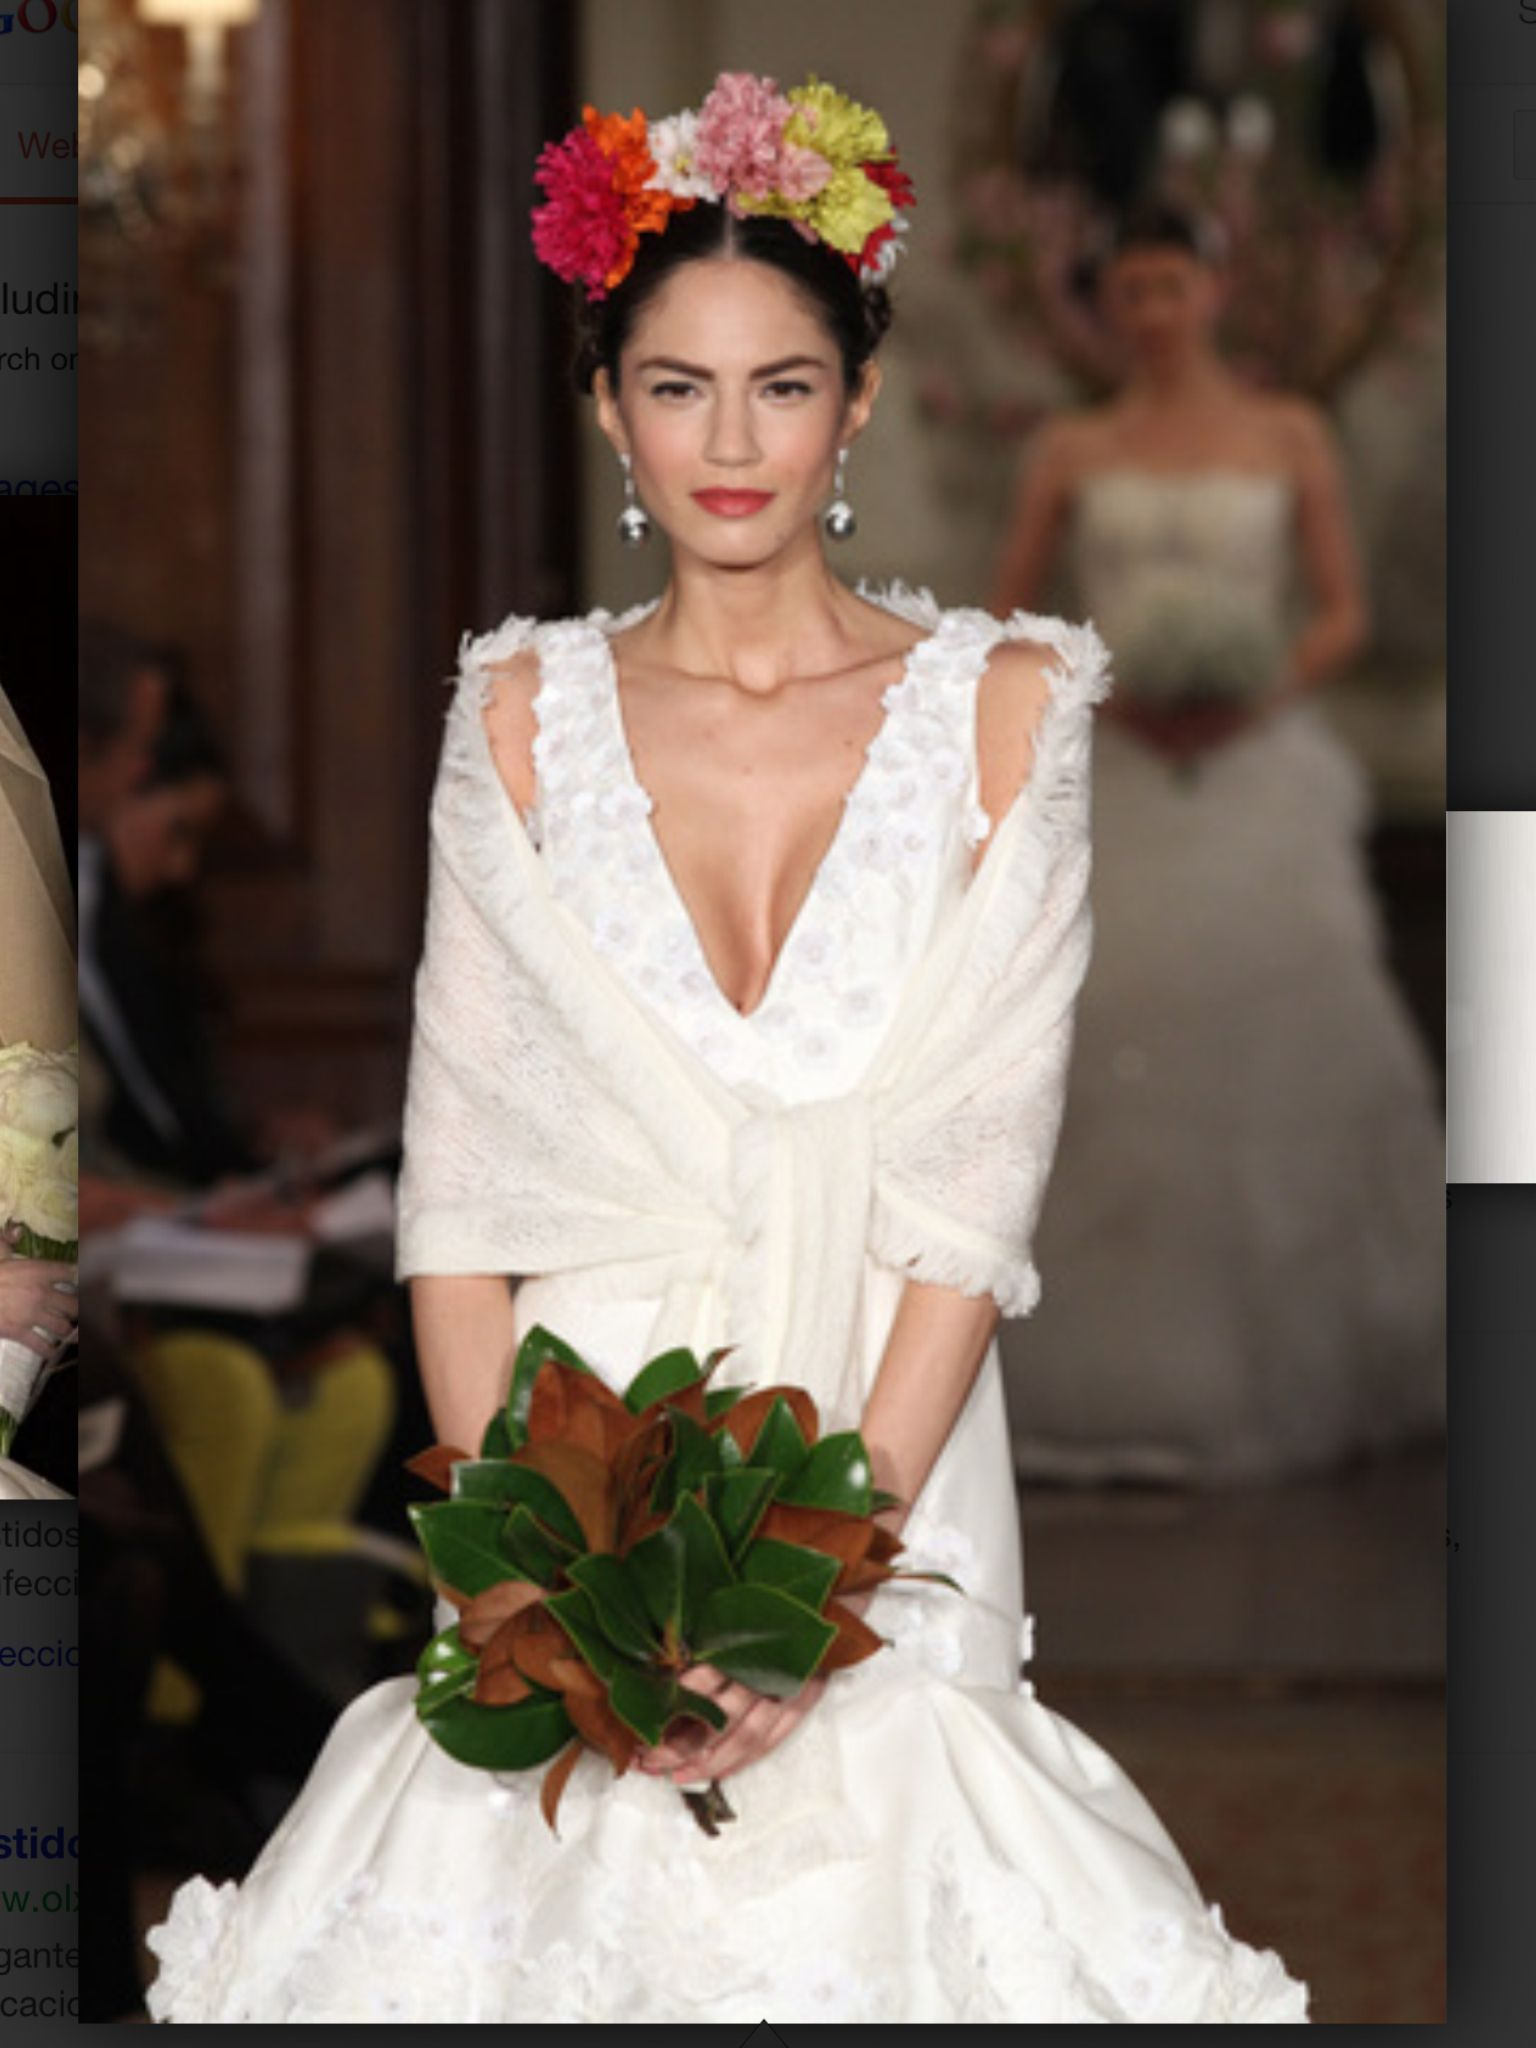 Mexican Style Wedding Dress Inspired By Frida Kahlo